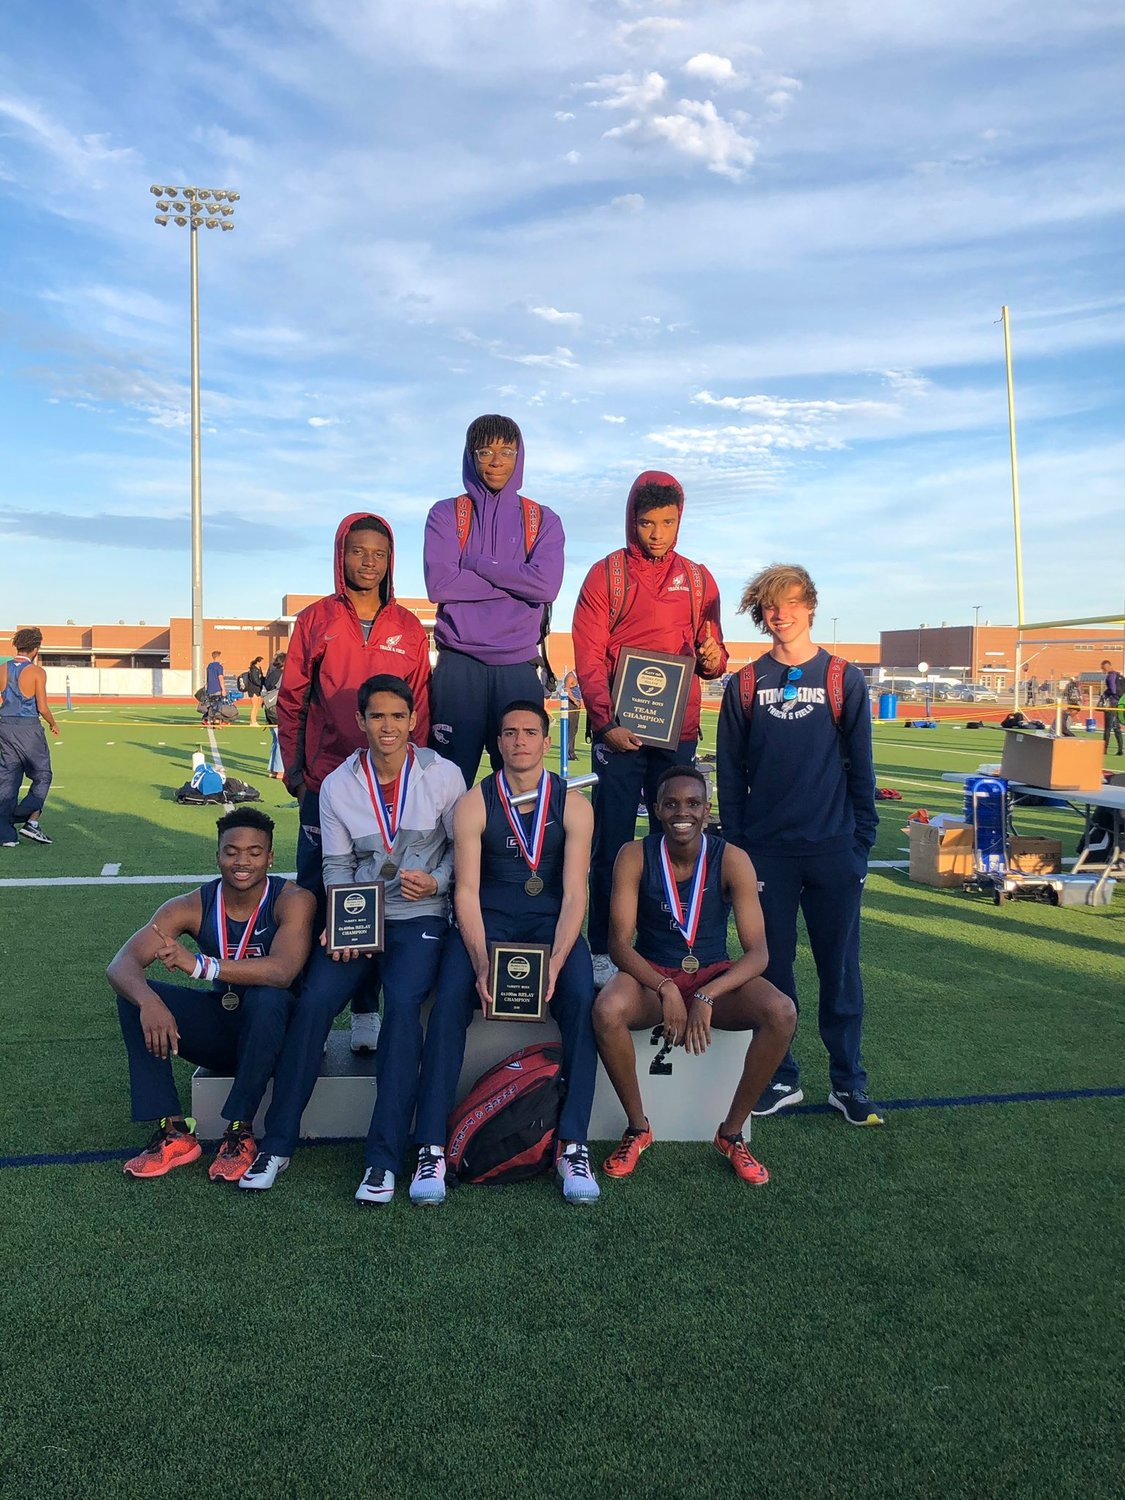 Tompkins' boys won the team championship at the Bubba Fife Relays on Feb. 29 at Paetow High, scoring 111 points in a 26-team field.